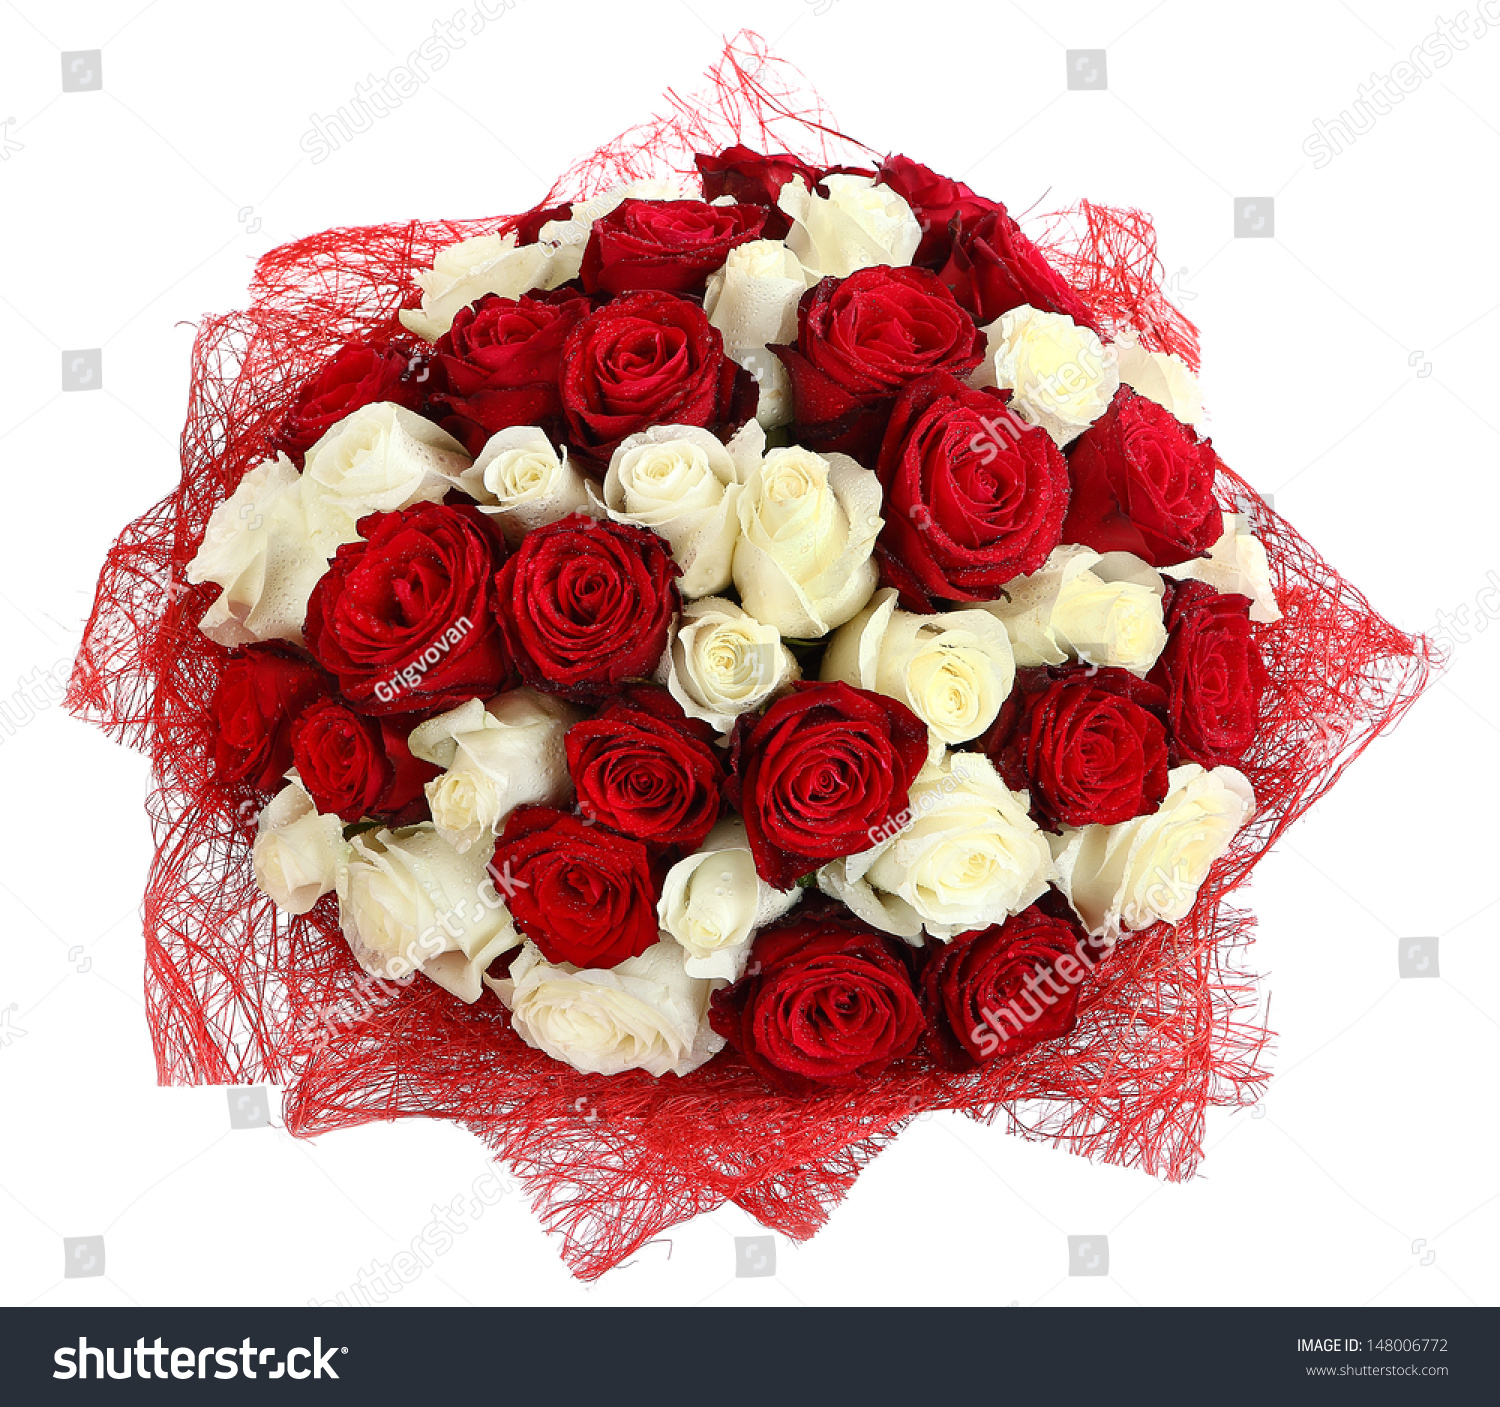 Floral compositions red white roses large stock photo for Different color roses bouquet